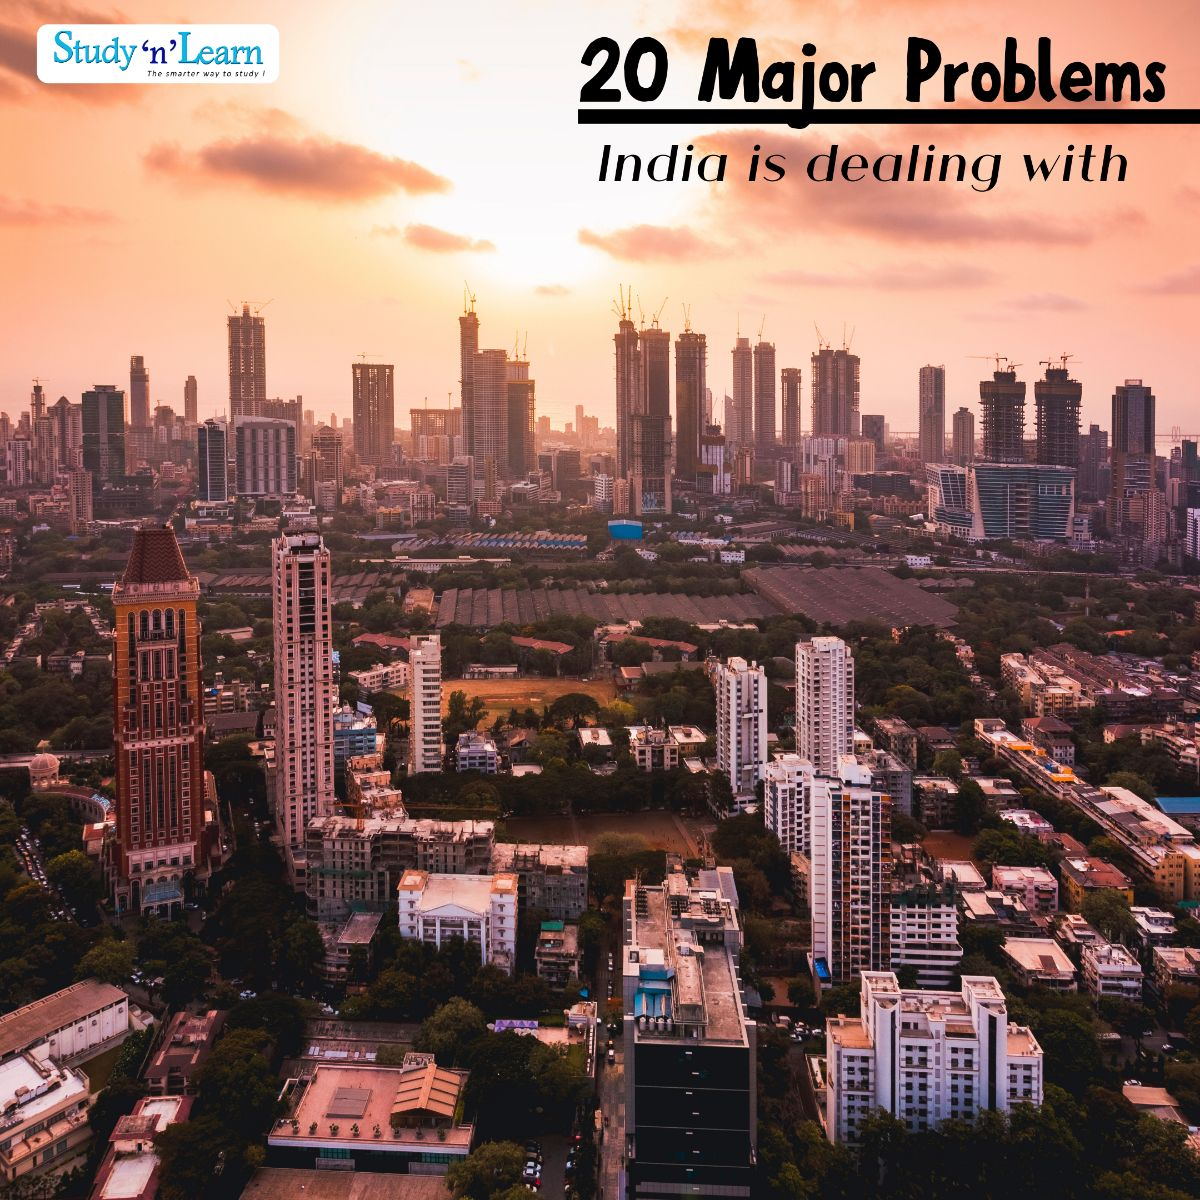 20 Major Problems our India is dealing with!